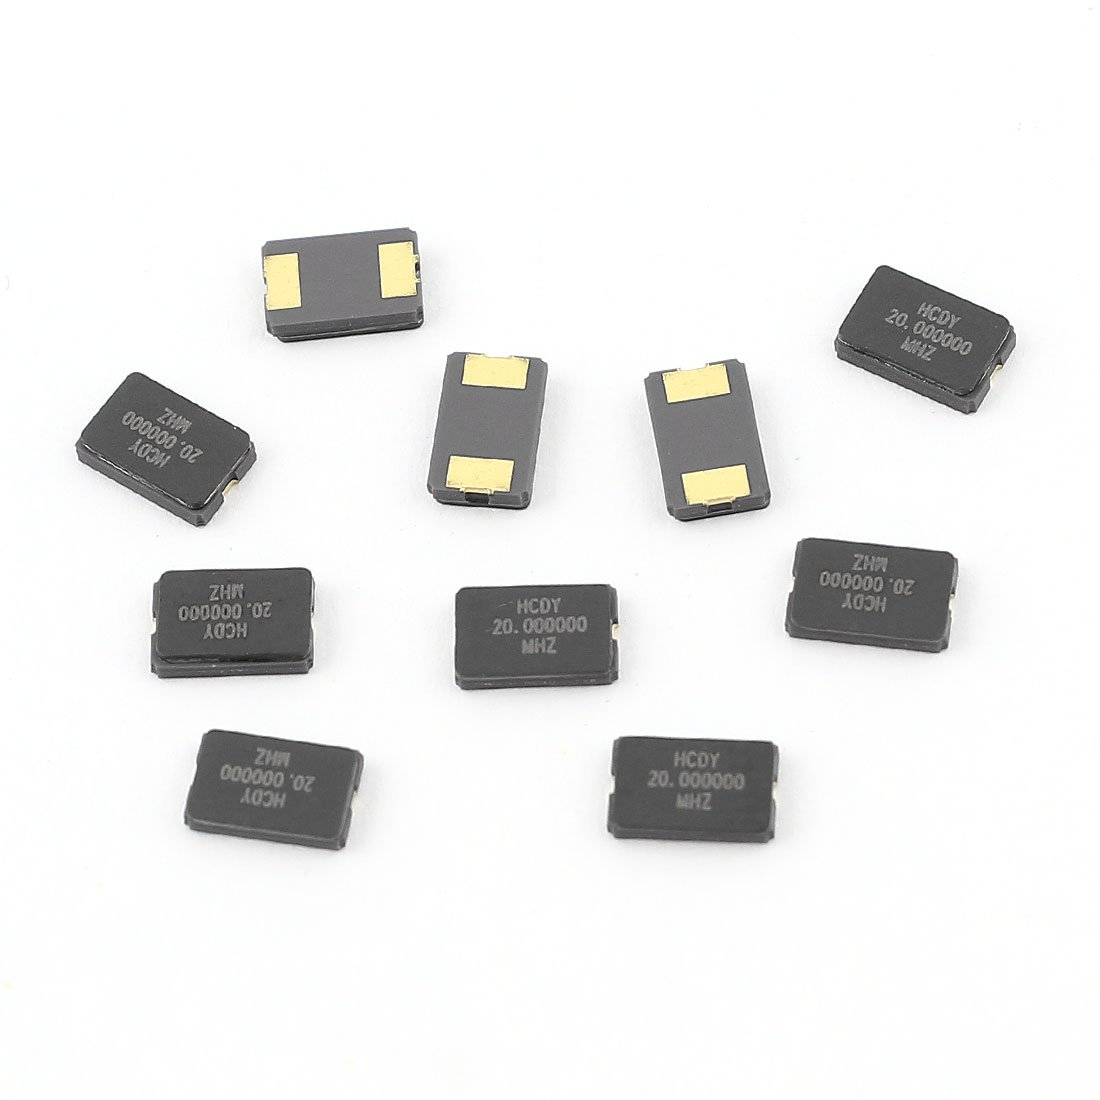 Aexit 10 Pcs Passive Components 20MHz 20.000Hz SMD 2Pin Passive Crystal Crystals Oscillator 5032